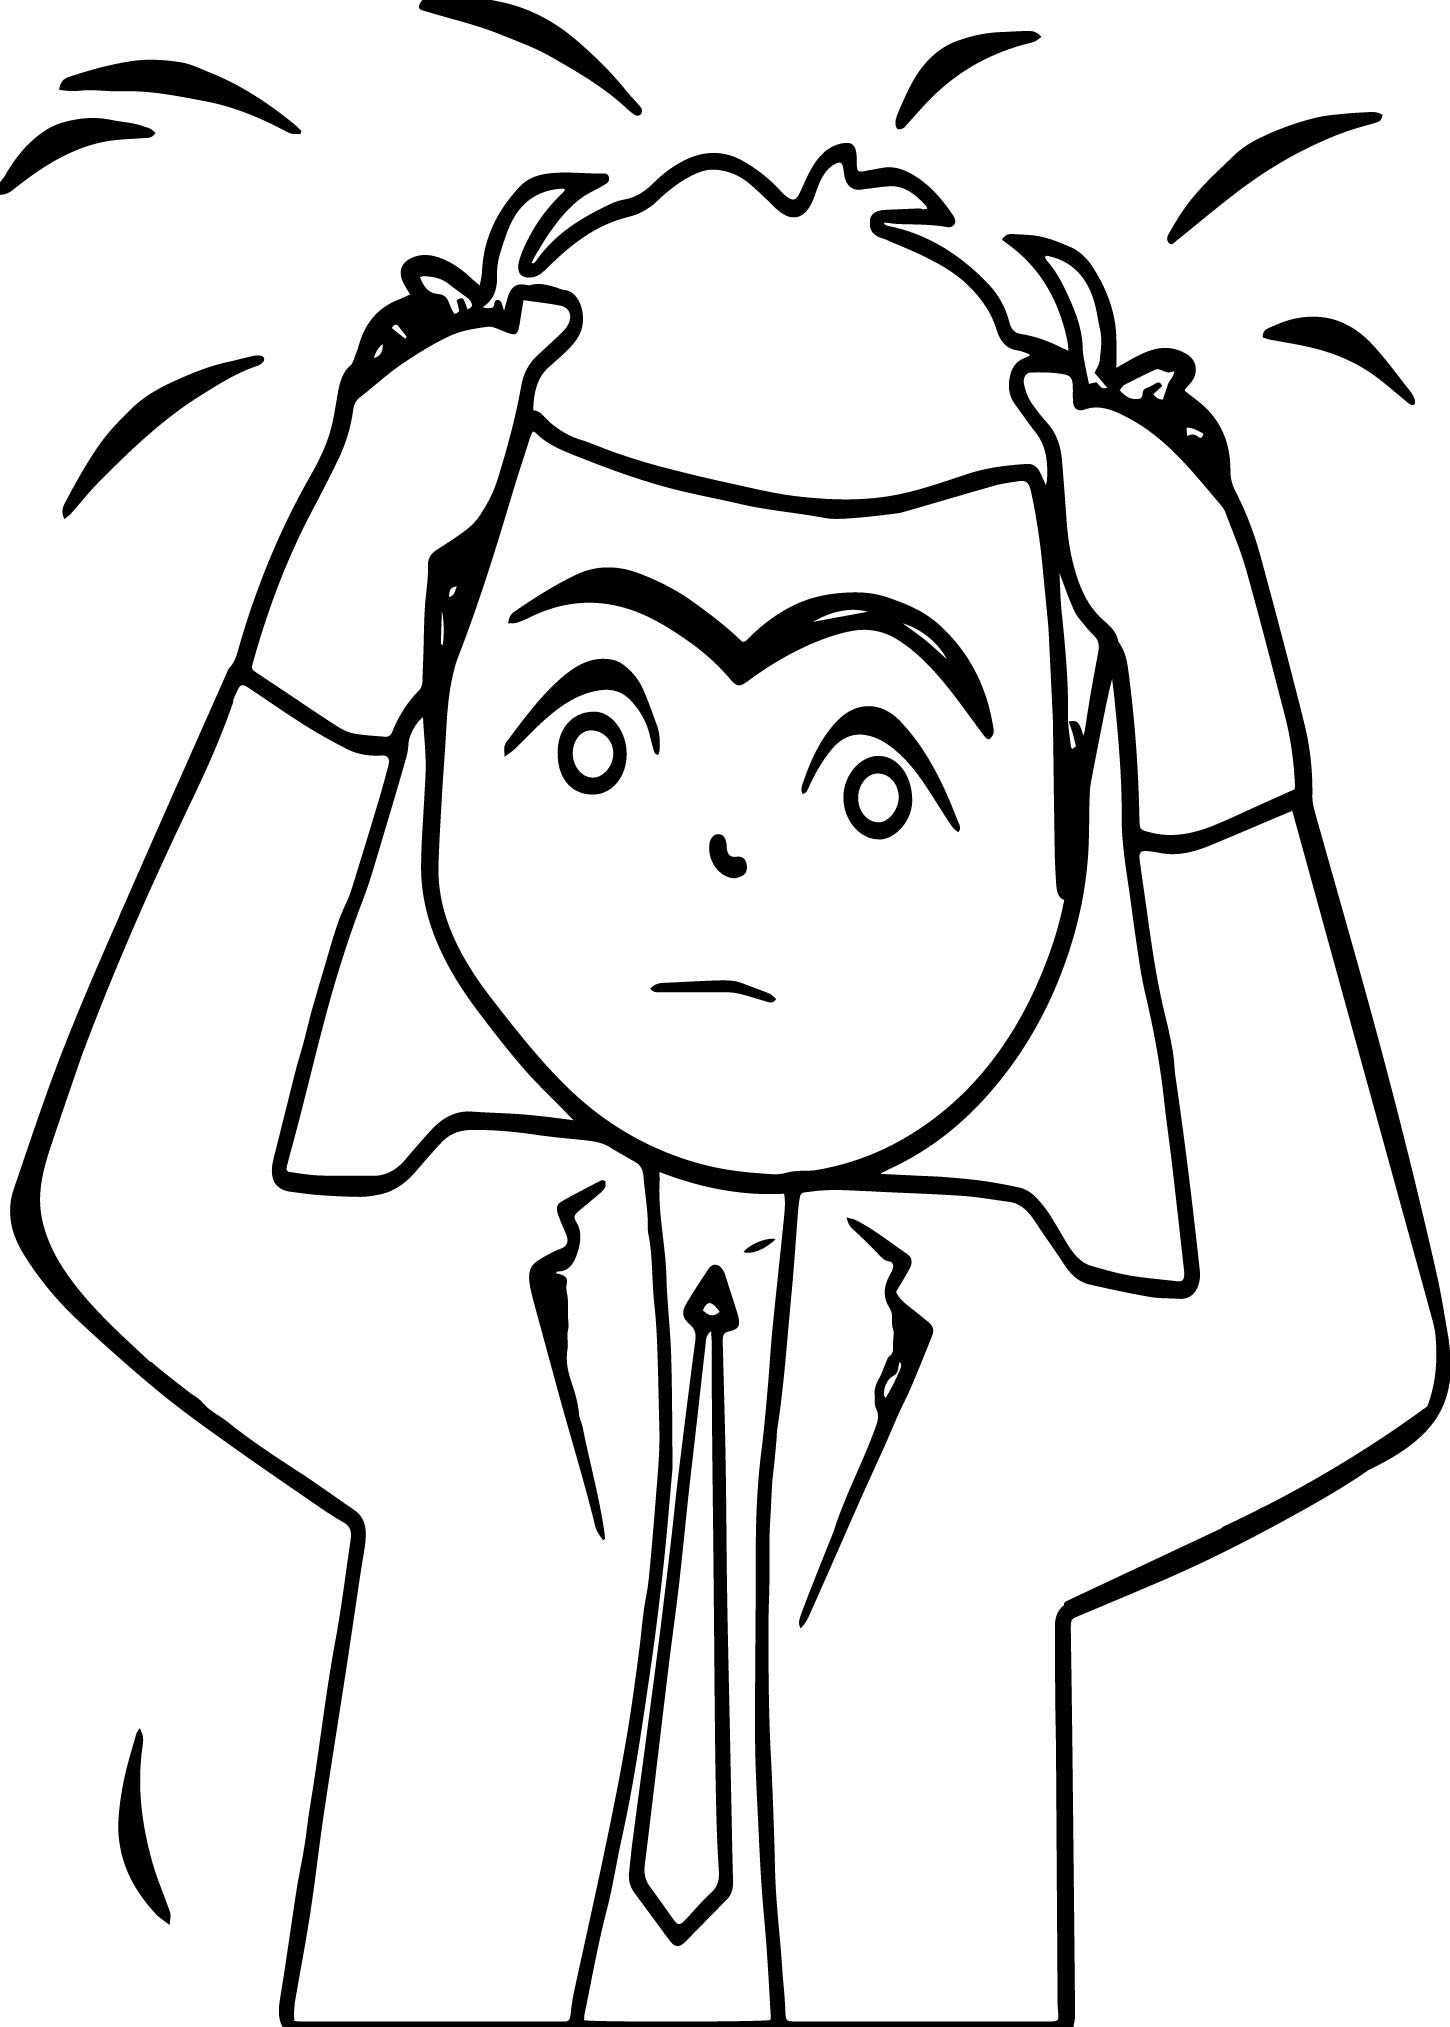 Funny Stressful Angry Management Coloring Page